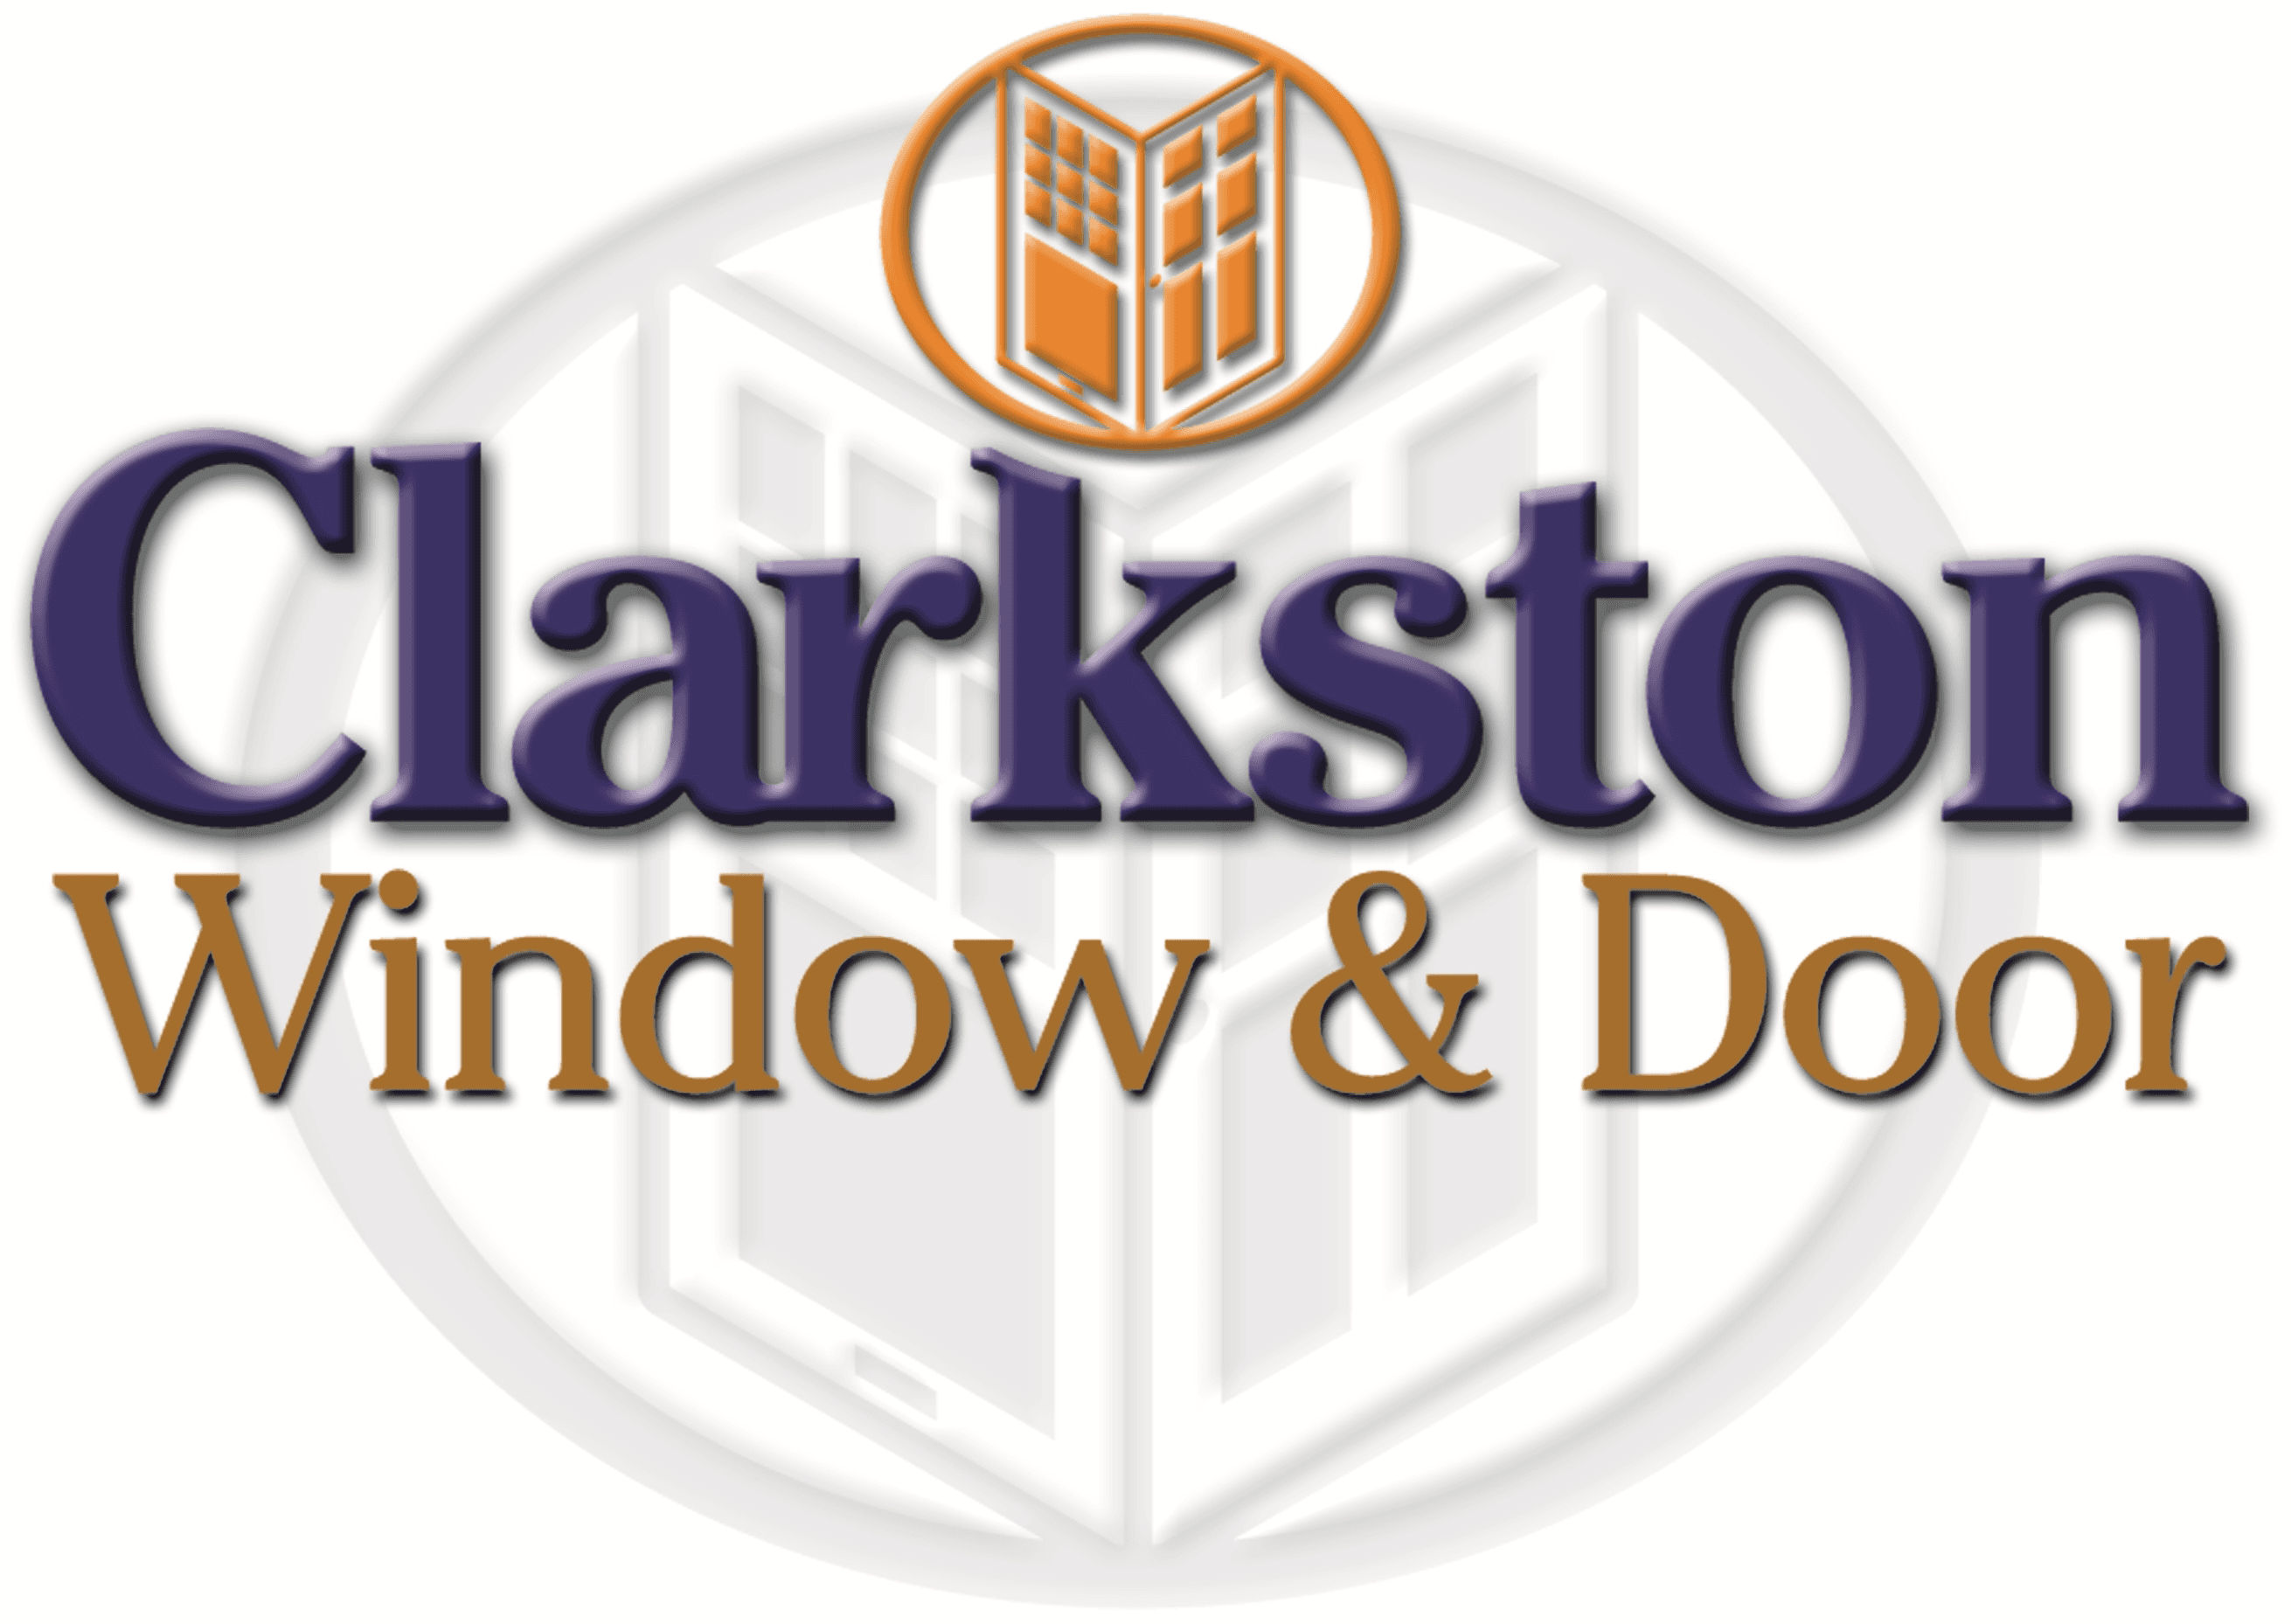 Clarkston Window & Door - Logo